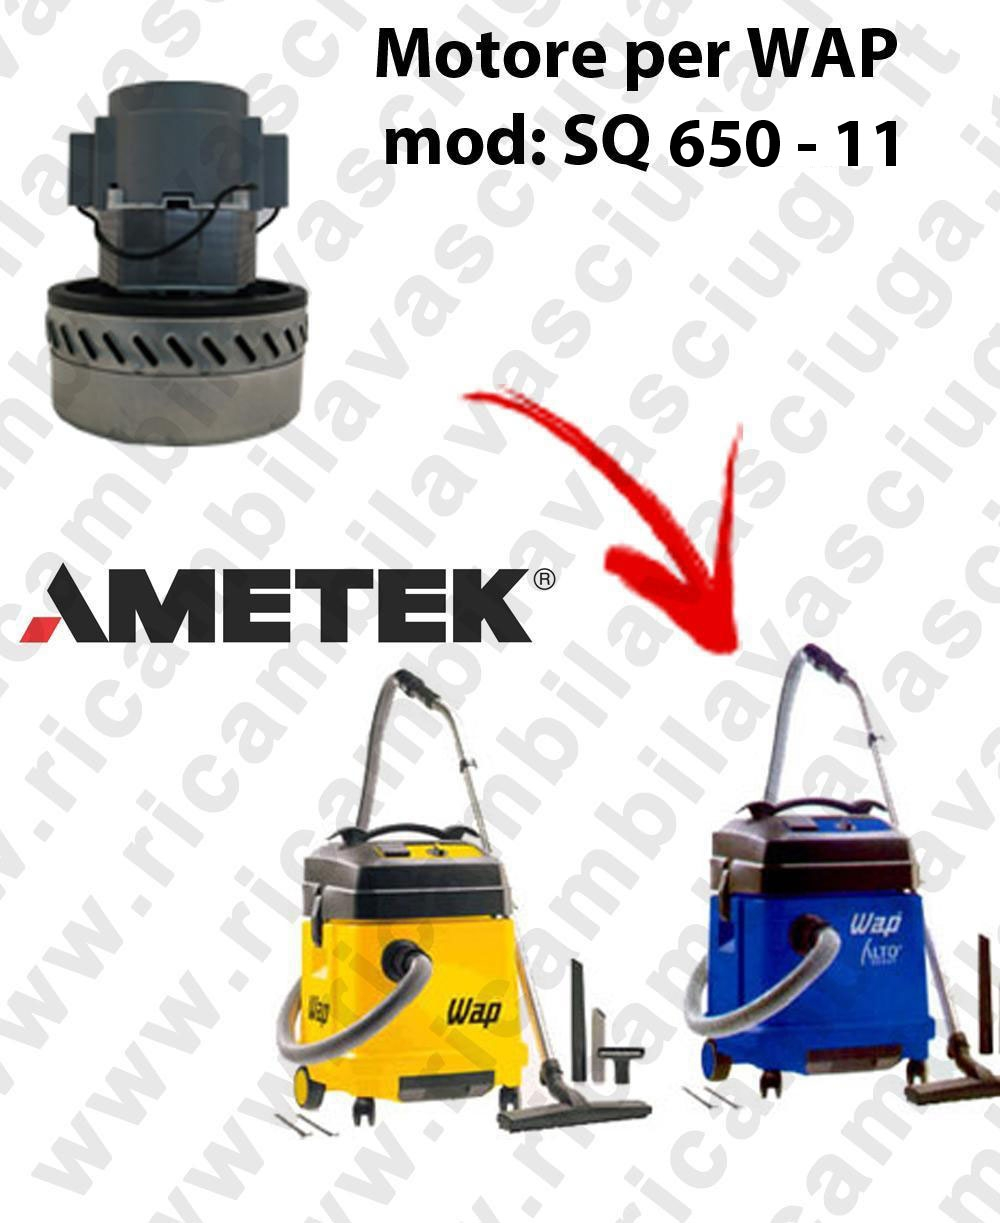 SQ 650 - 11 Ametek Vacuum Motor for vacuum cleaner WAP